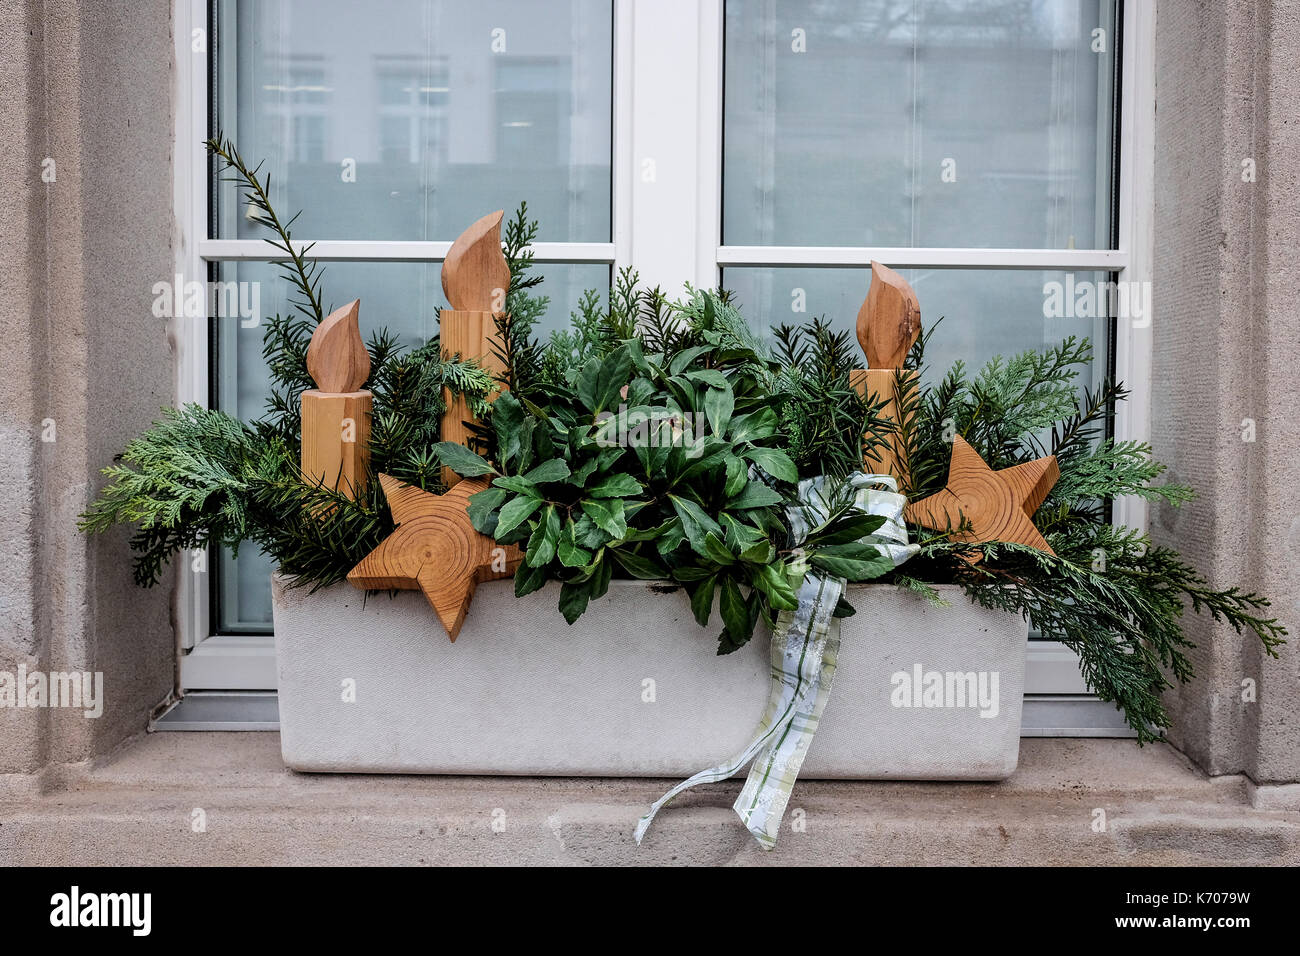 Weihnachten stockfotos weihnachten bilder alamy for Dekoration fensterbank